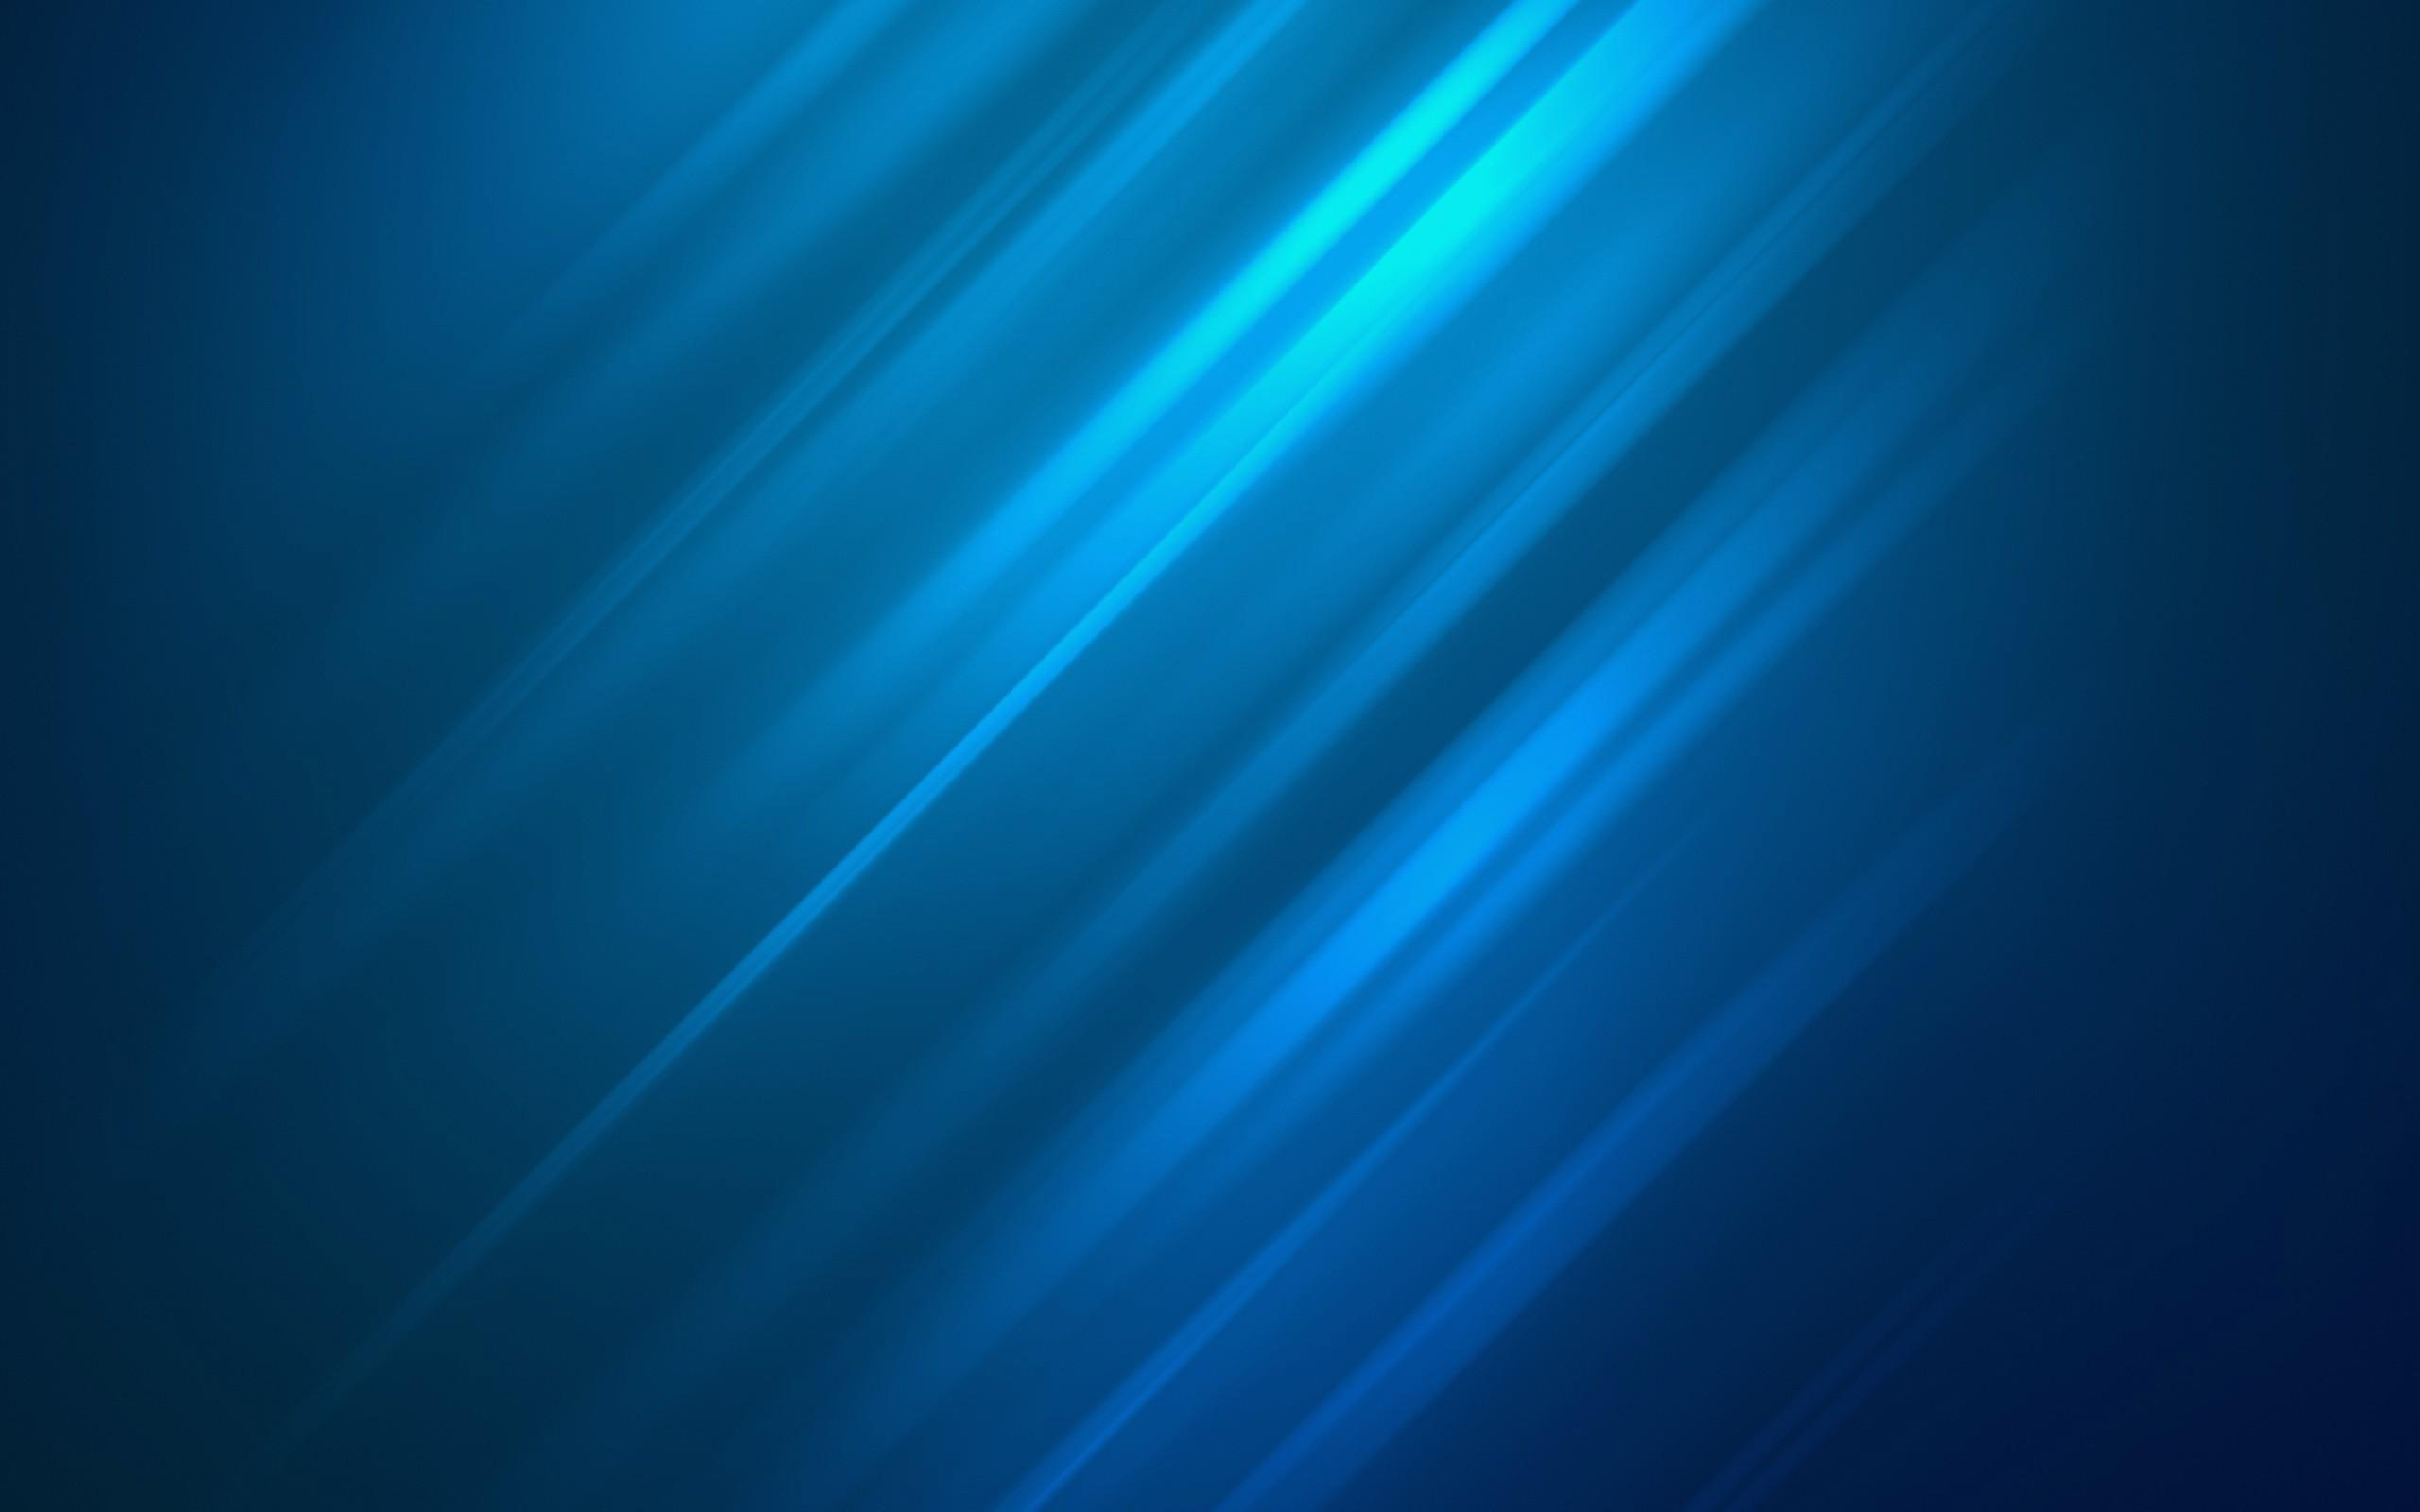 Blue Abstract wallpapers HD quality